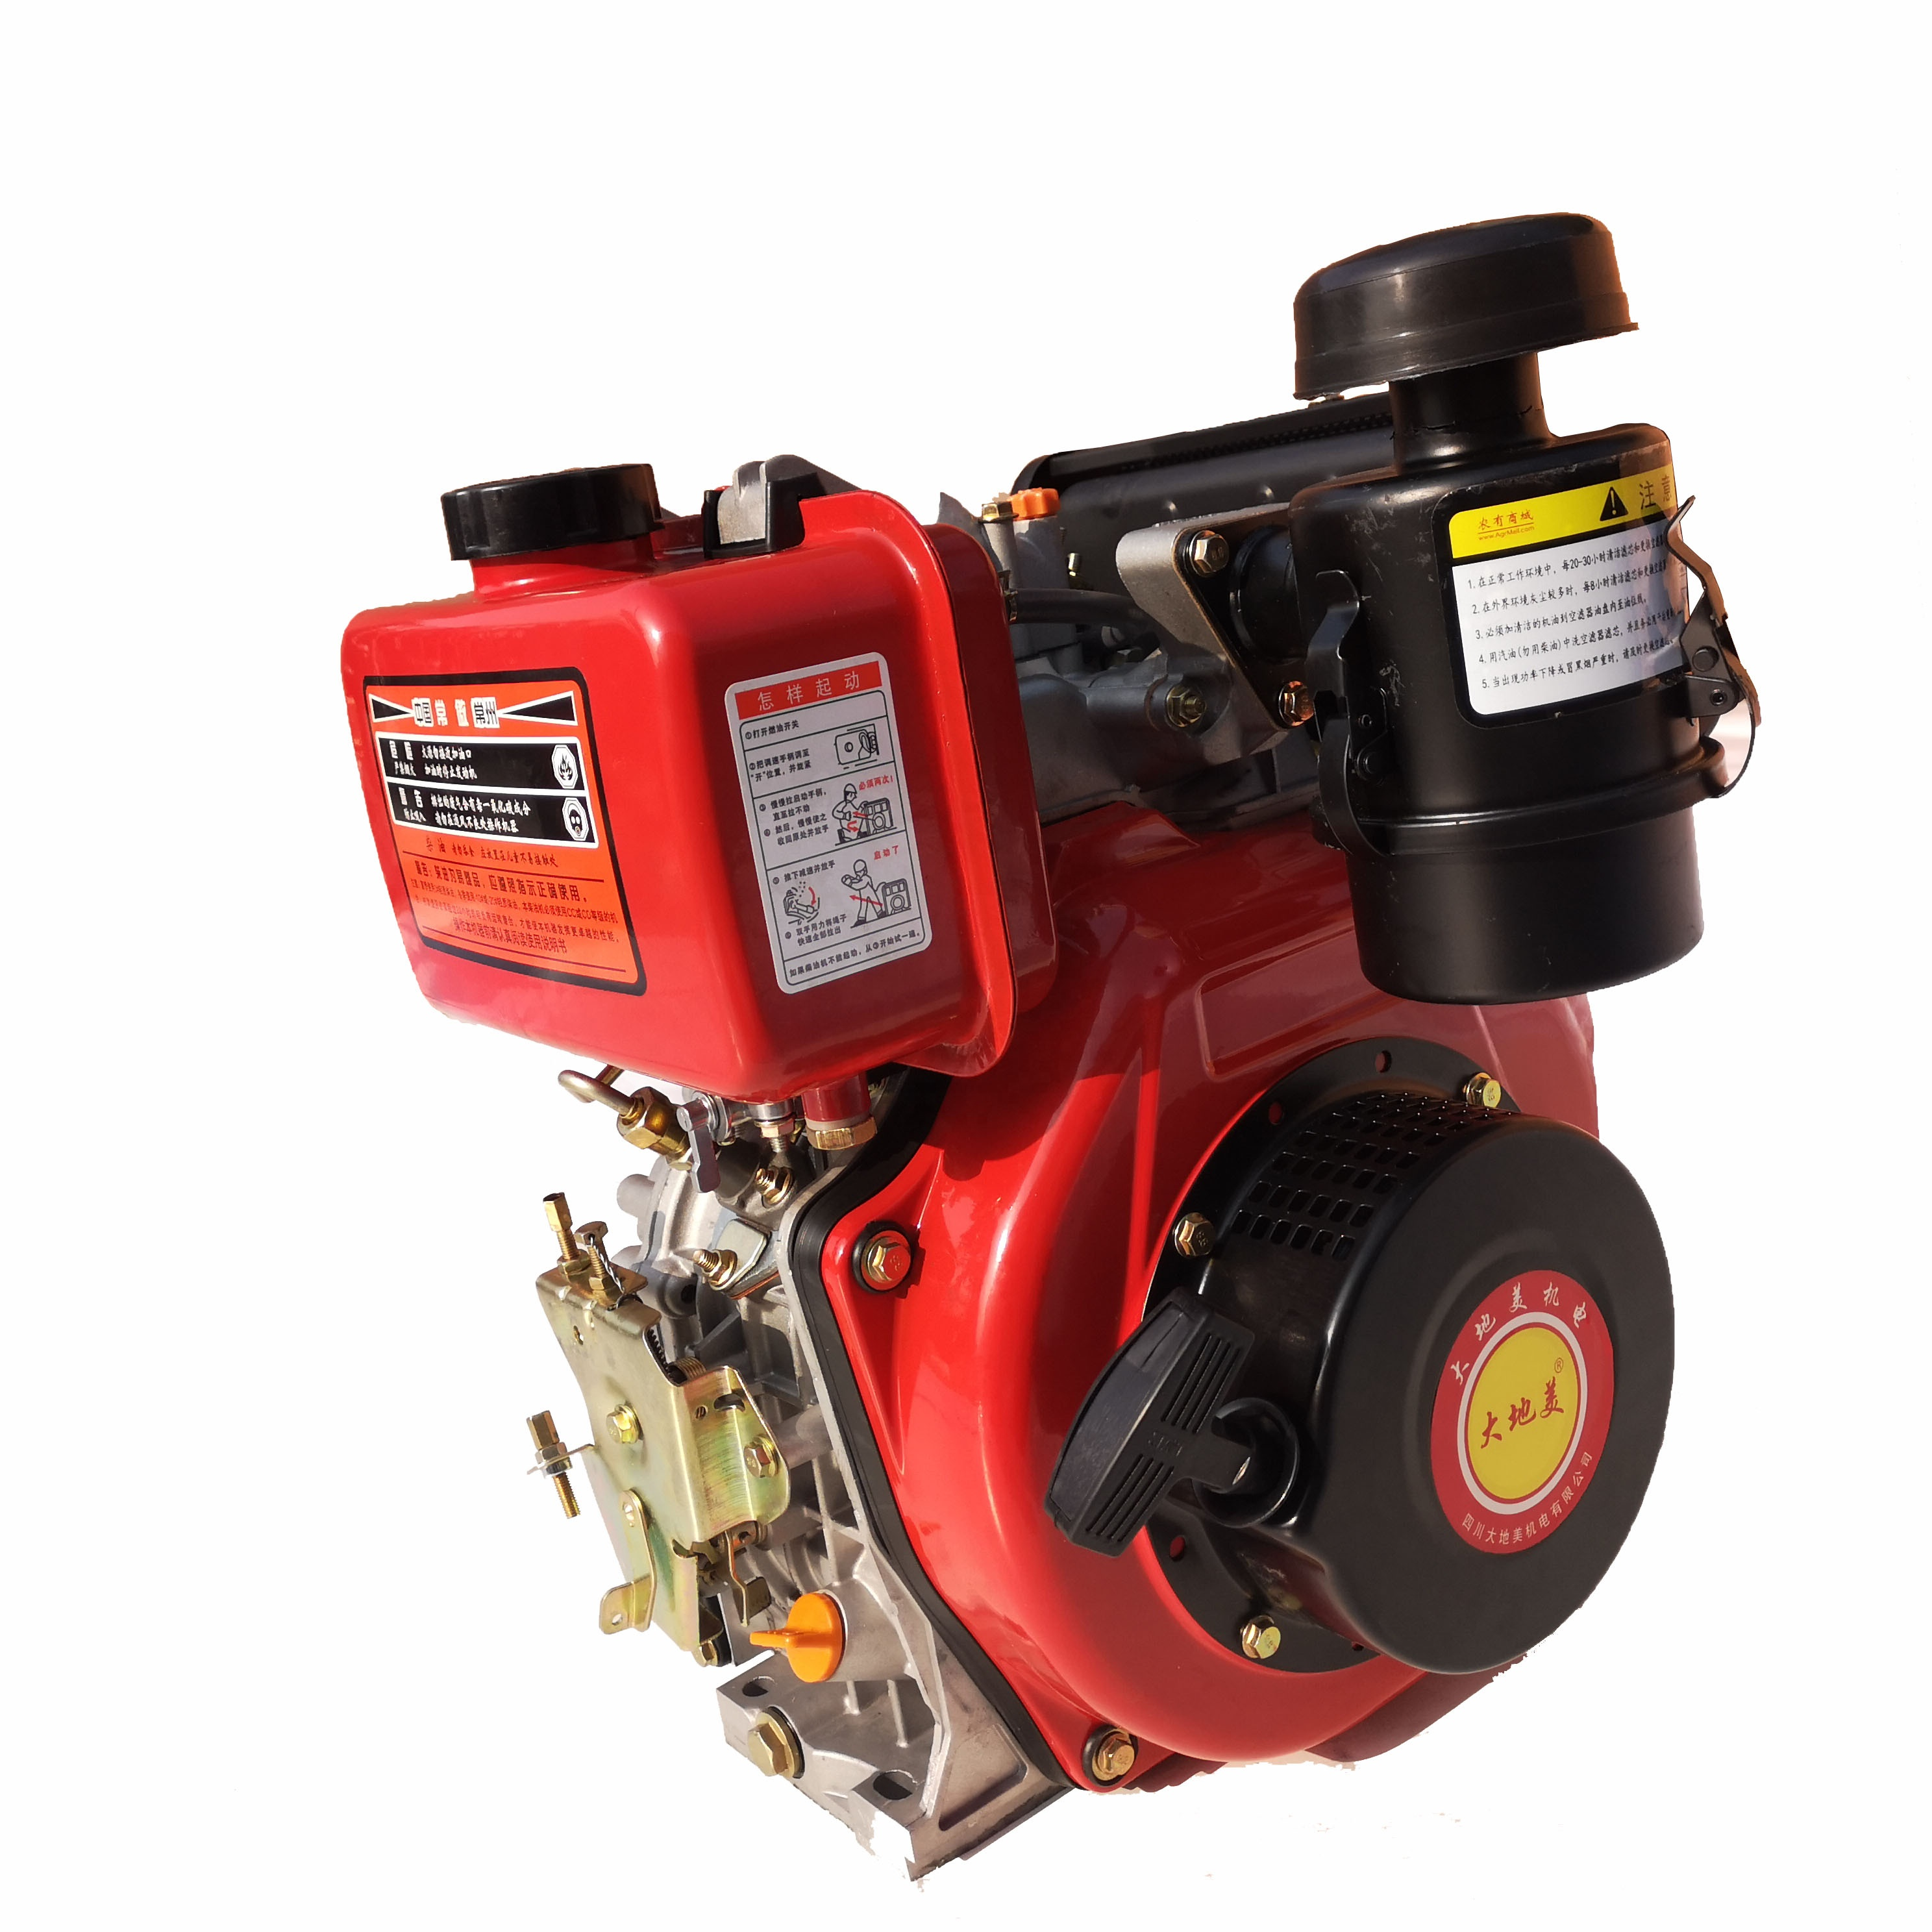 China small diesel engines wholesale 🇨🇳 - Alibaba